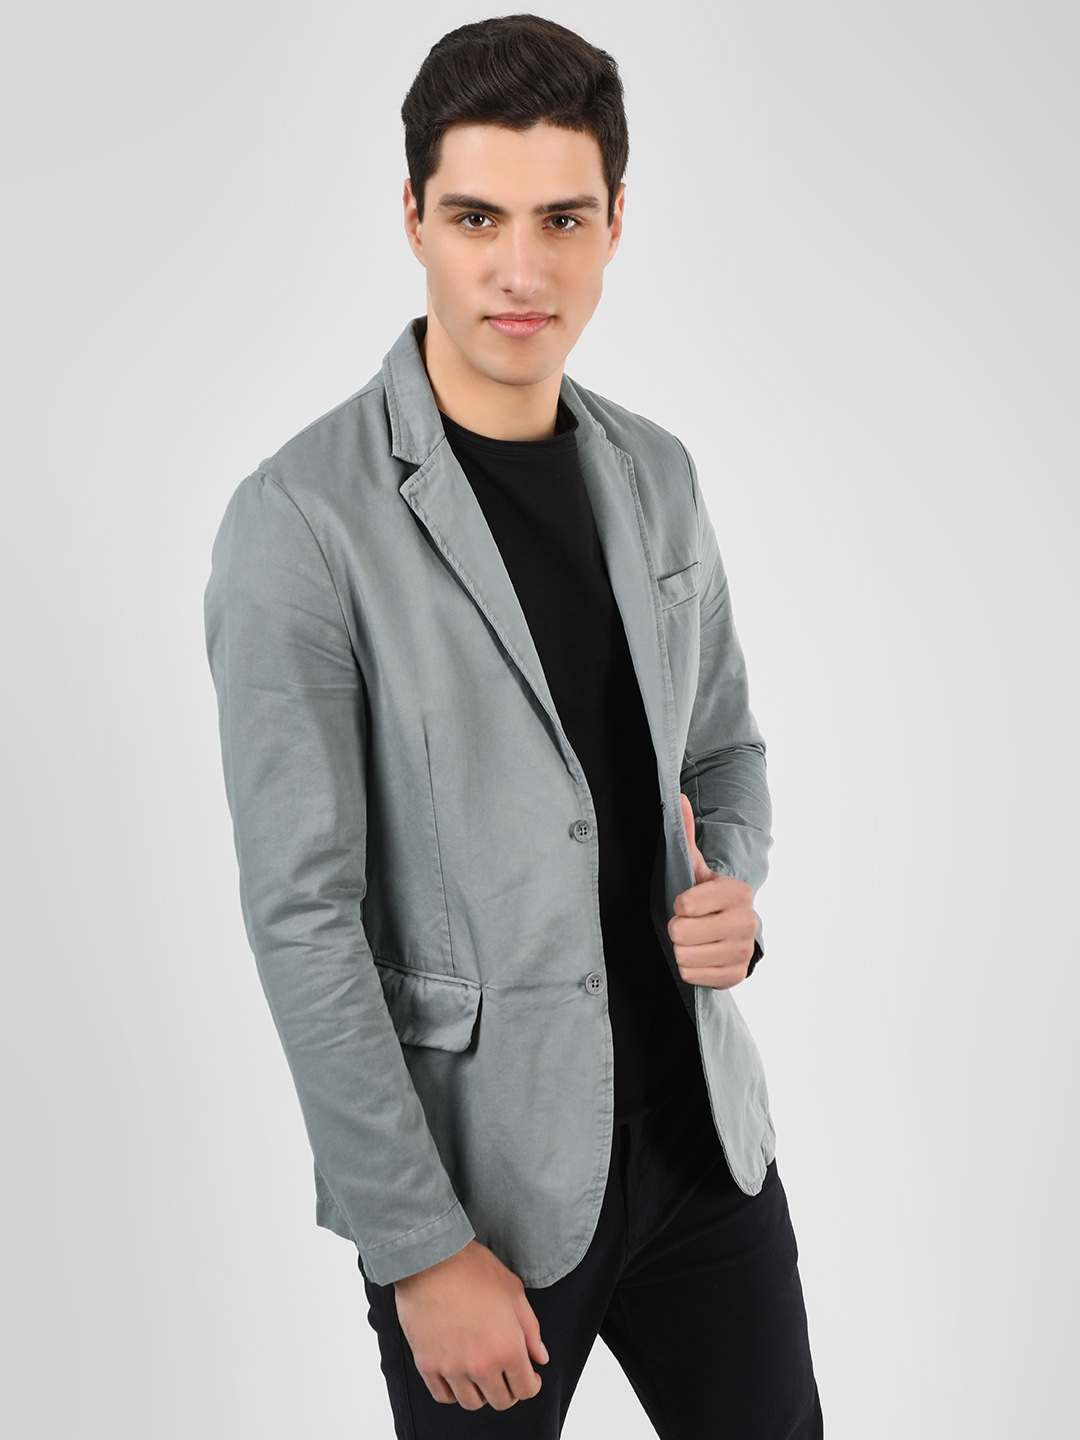 Blue Saint Grey Single Breasted Casual Twill Blazer 1